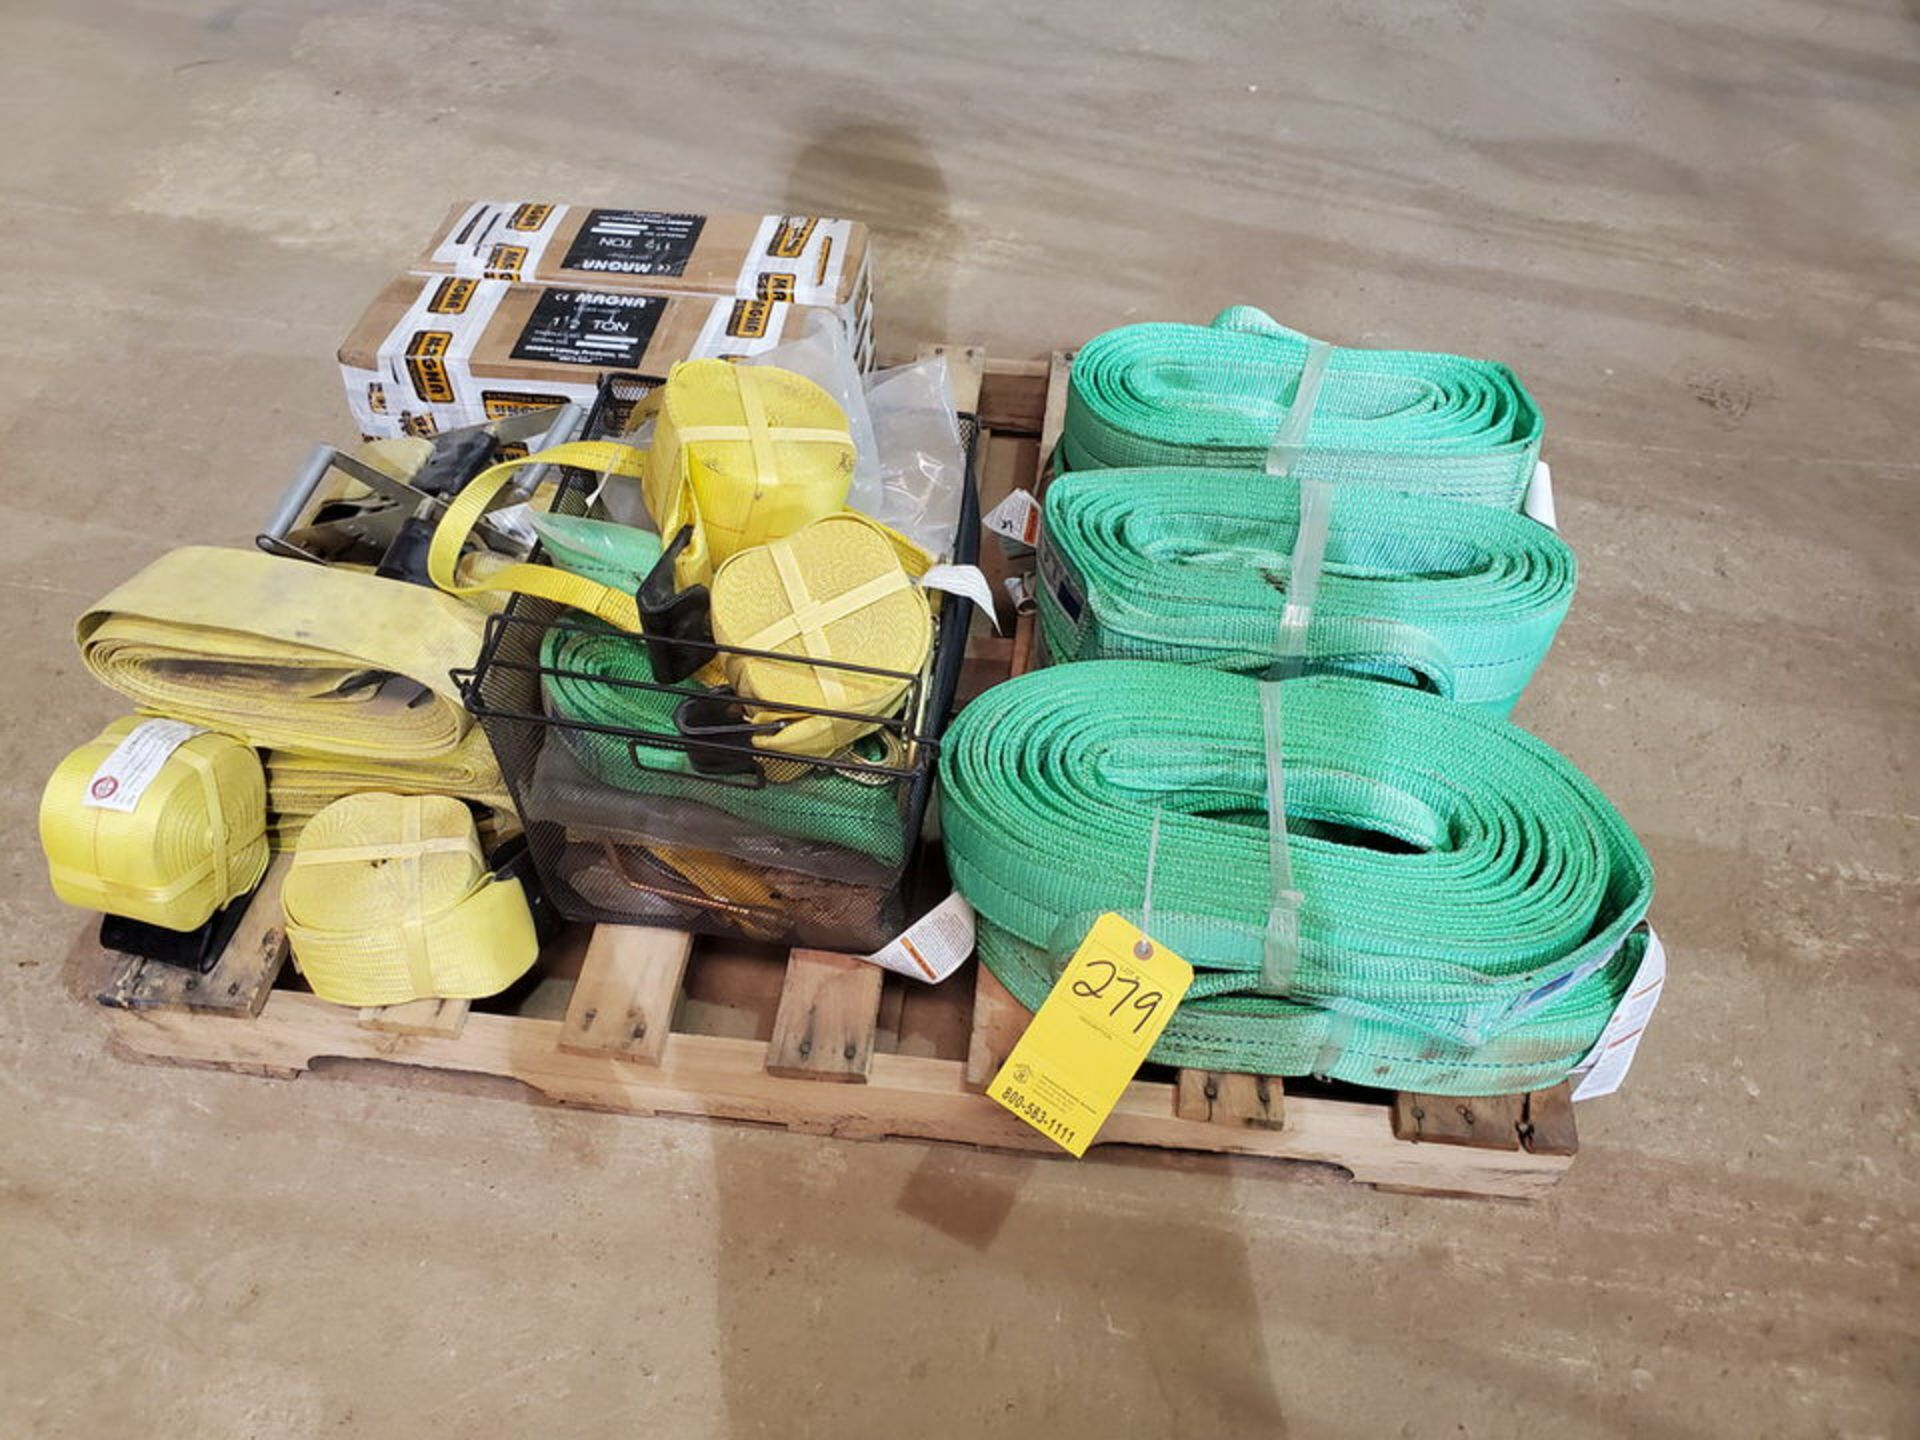 Assorted Lifting Equipment To Include But Not Limited To:Poly Lifting Winch Straps, Chains, 1-1/2